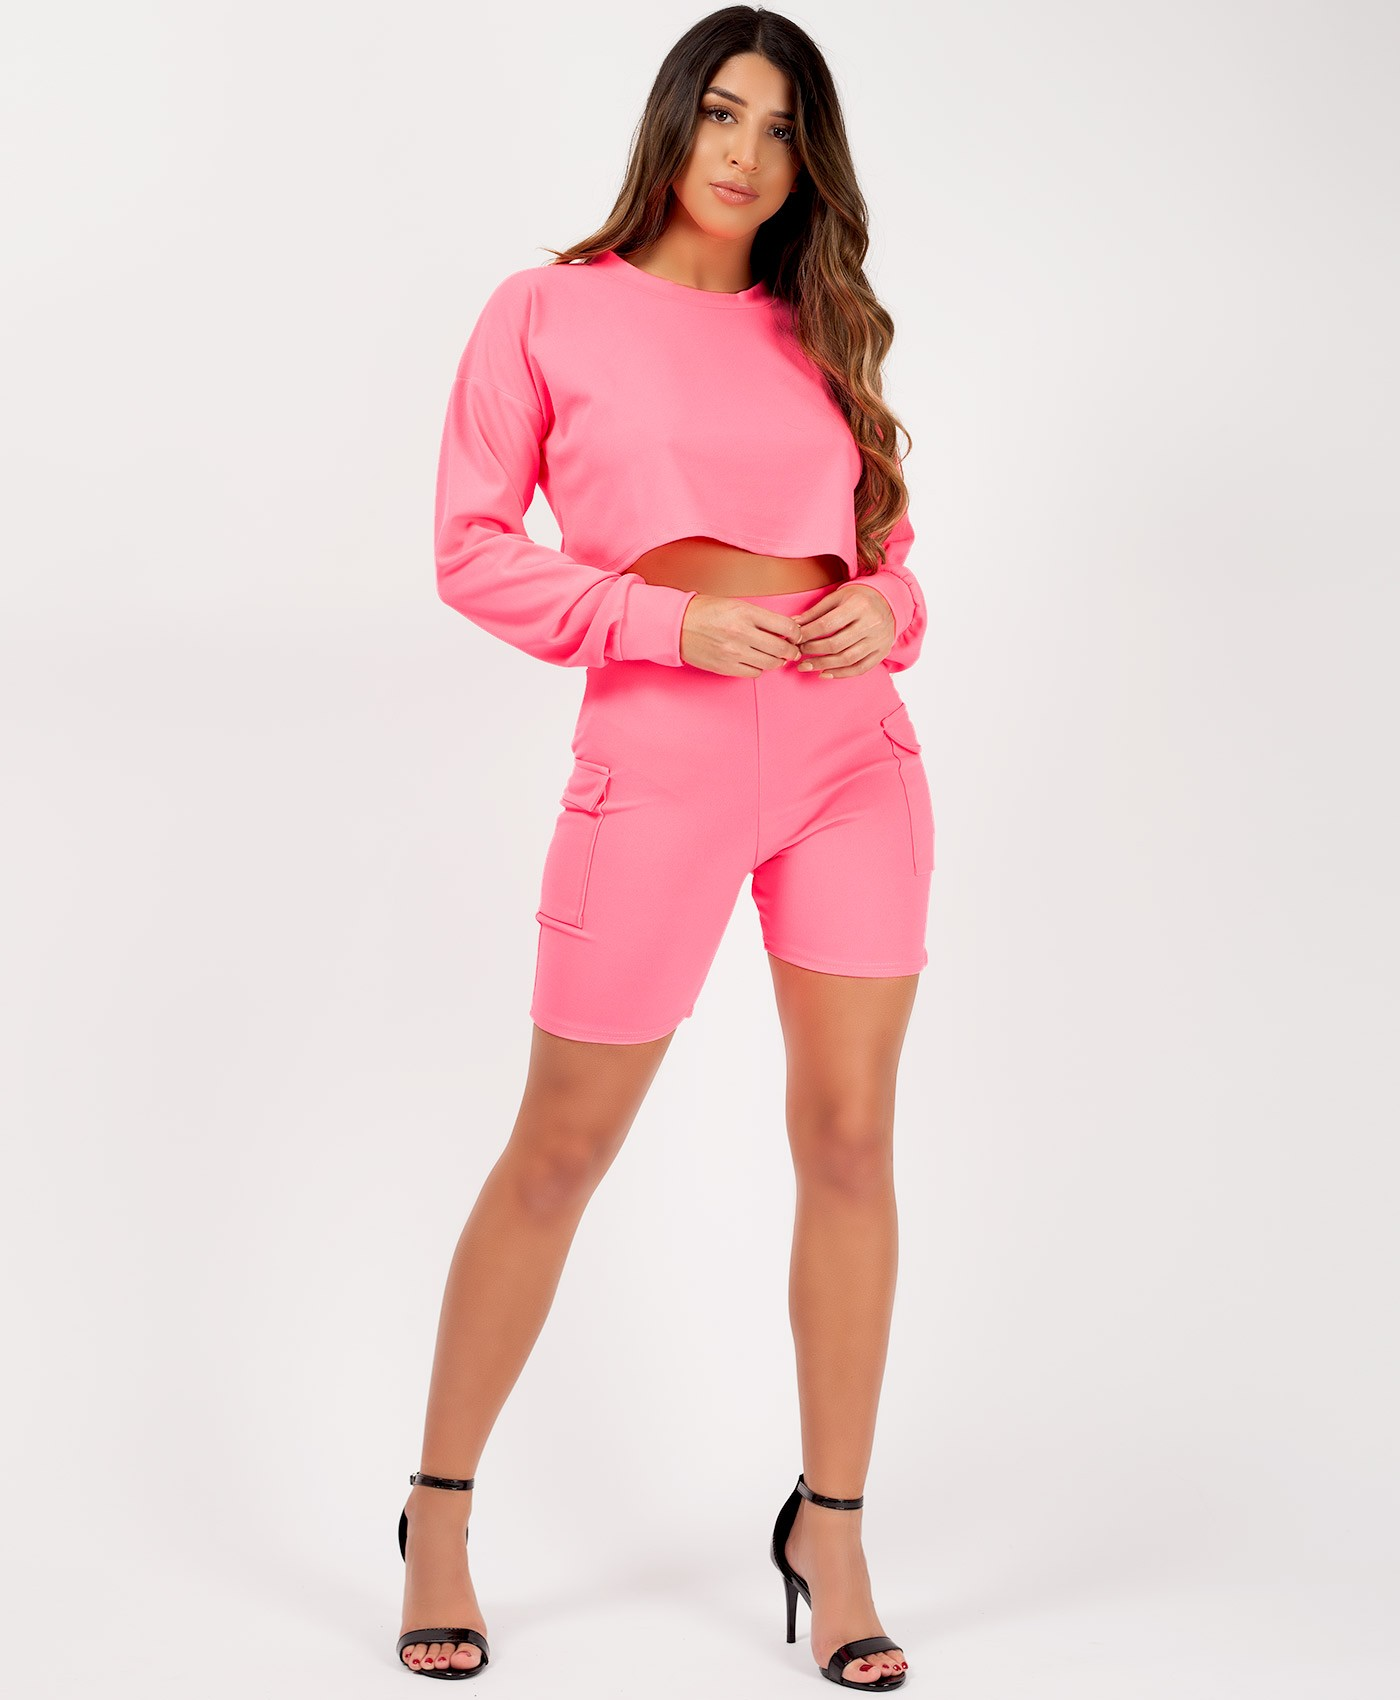 Neon-Pink-Long-Sleeve-Crop-Top-Cycling-Short-Co-Ord-Set-1